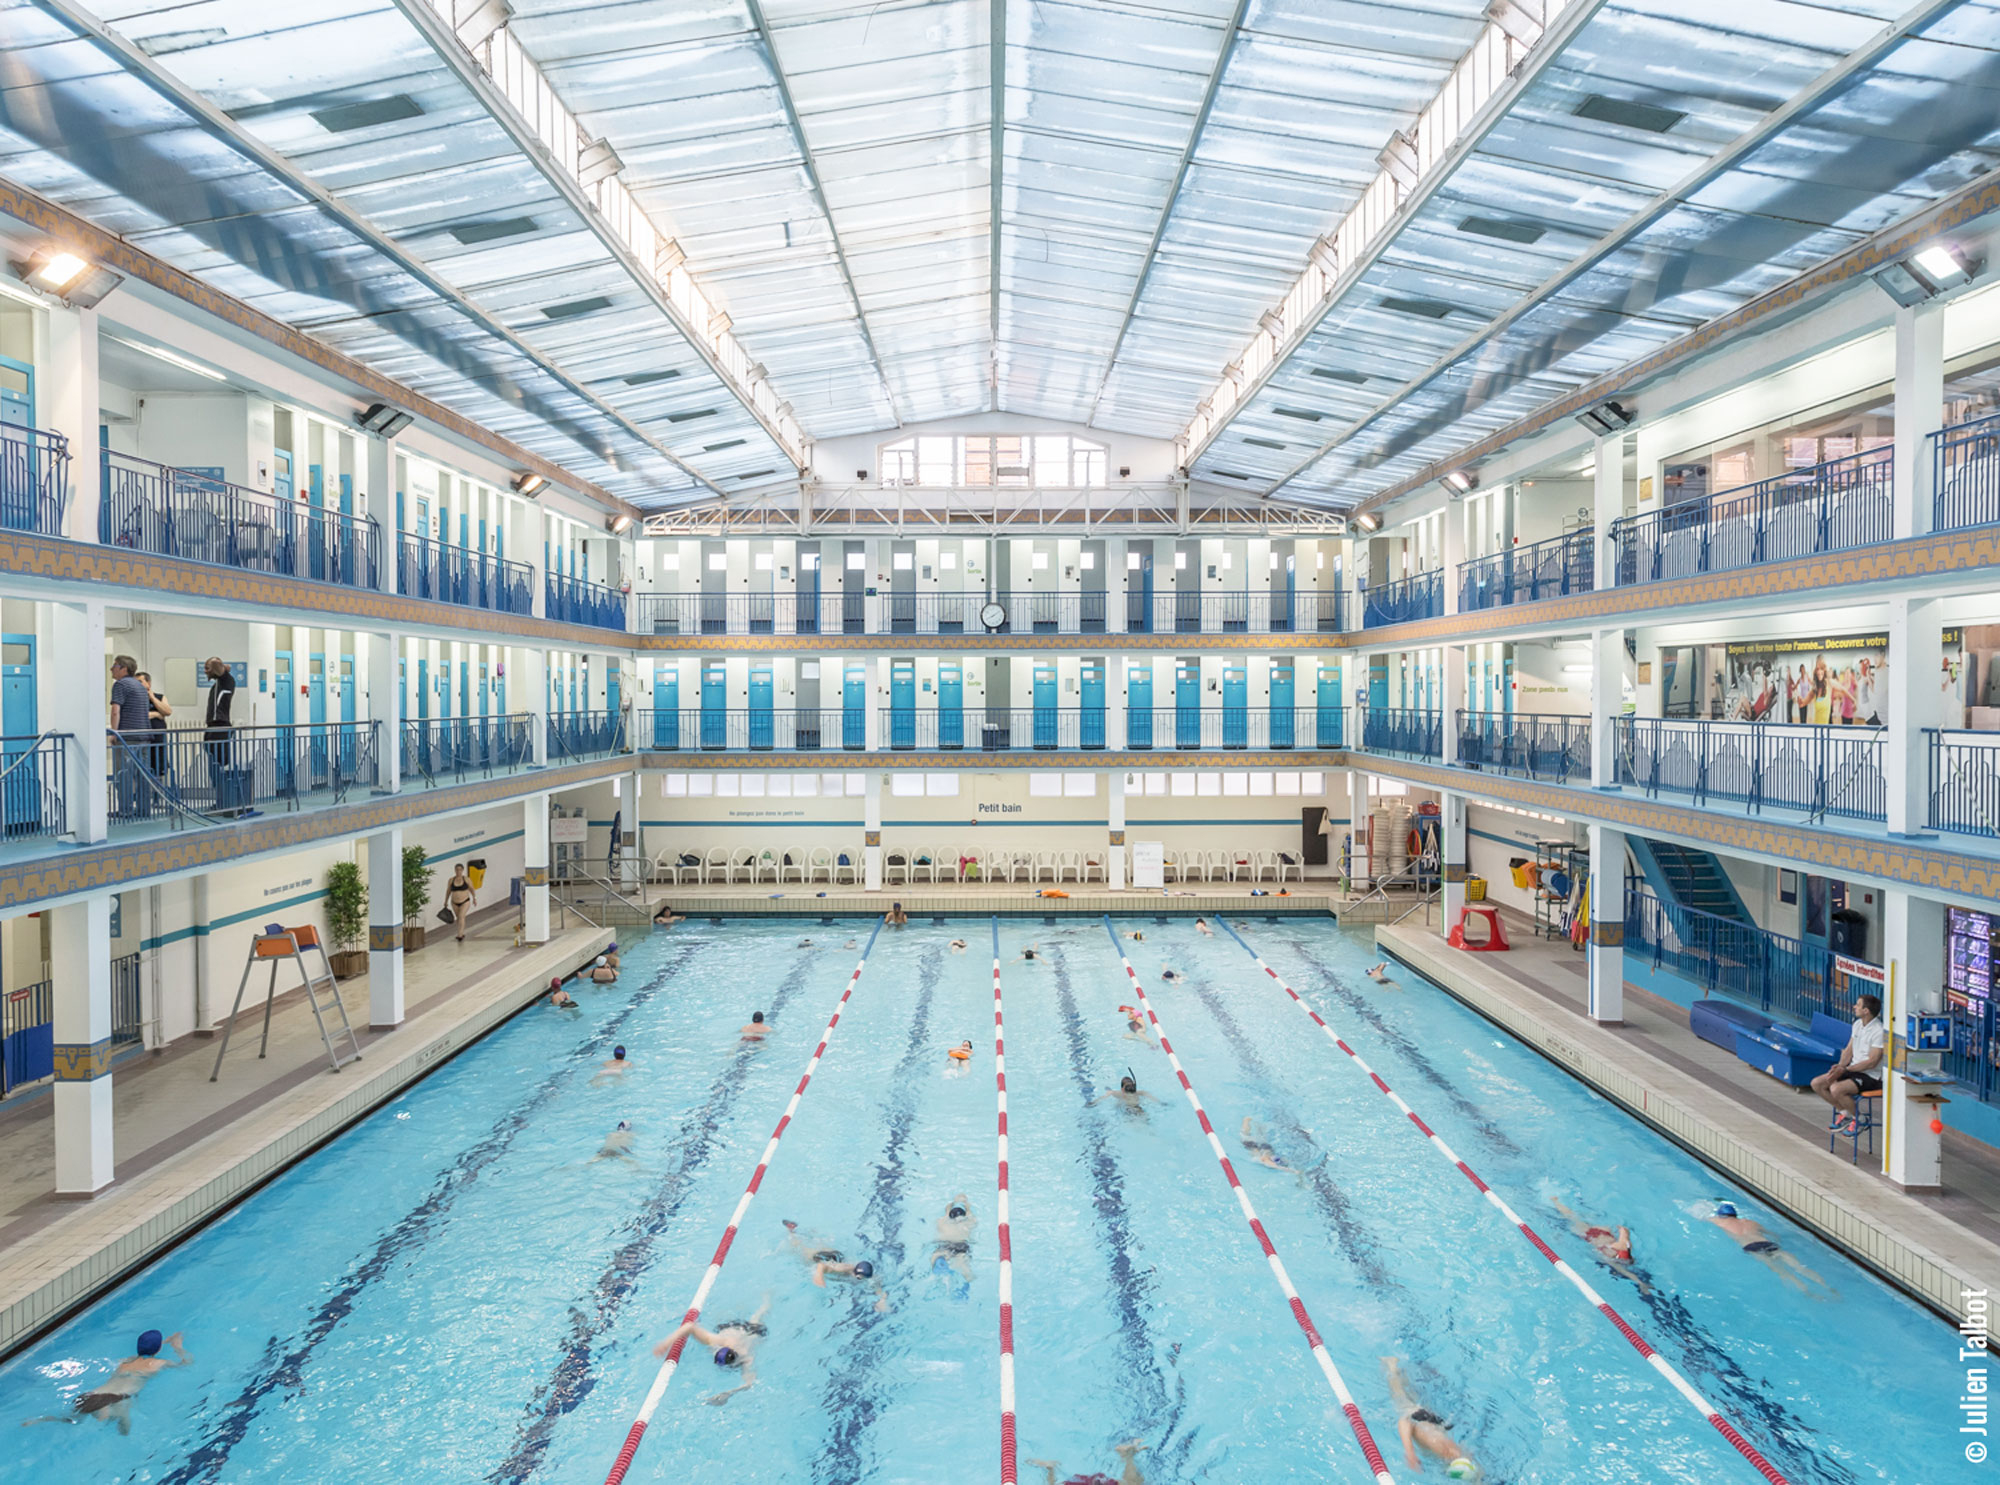 Piscine Pontoise Quartier Latin - One Of The Best Swimming ... dedans Piscine De Pontoise